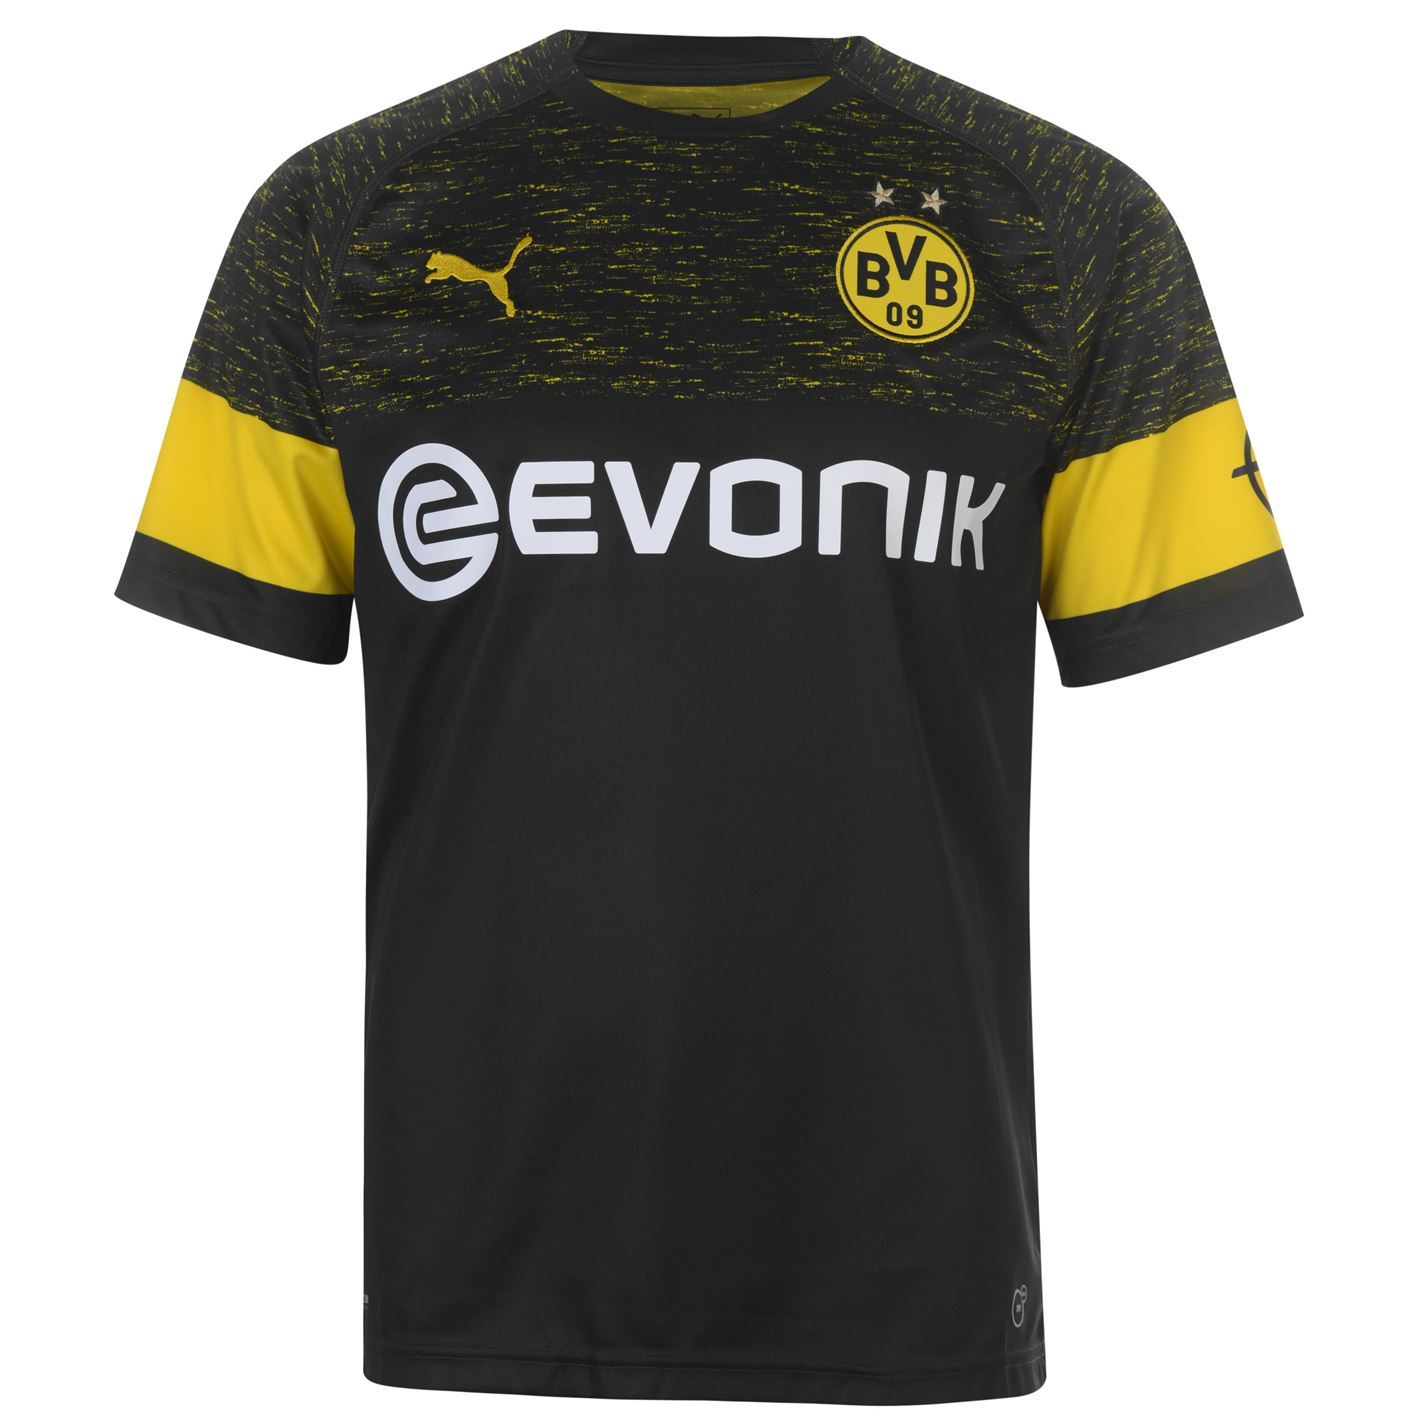 ... Puma Borussia Dortmund Away Jersey 2018 19 Mens Black Football Soccer  Shirt Top ... e09e00985